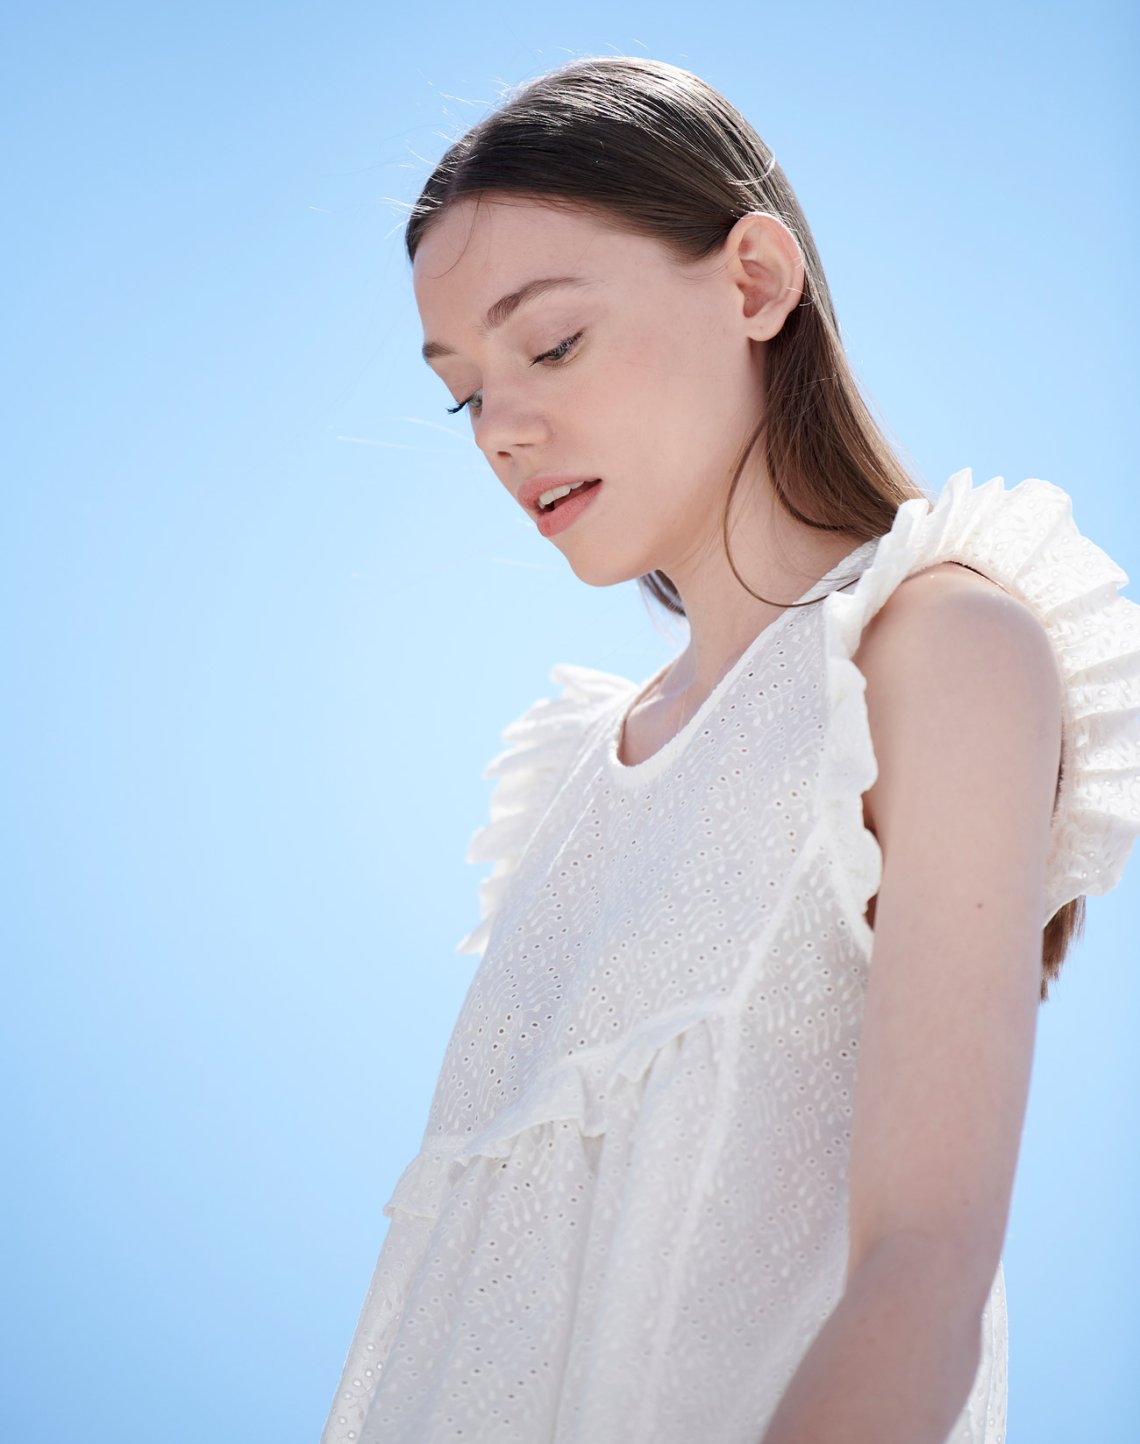 Broderie top with ruffles